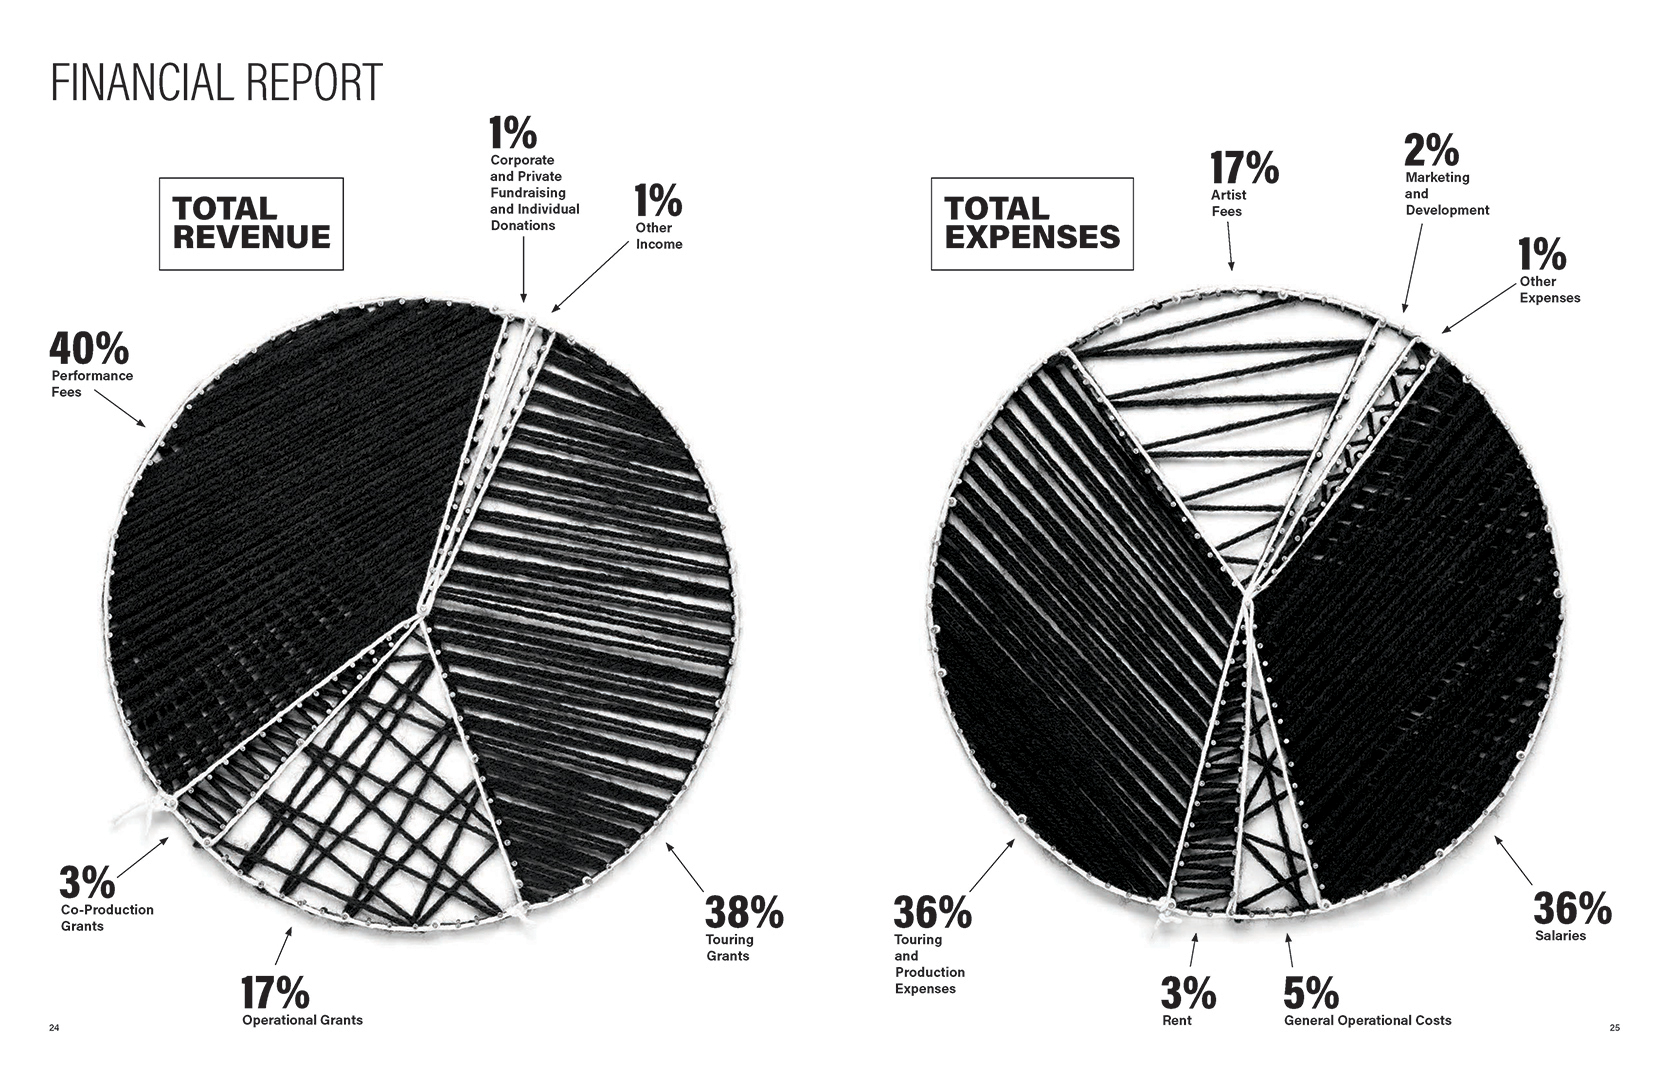 String art pie charts for a financial report for Mammalian Diving Reflex